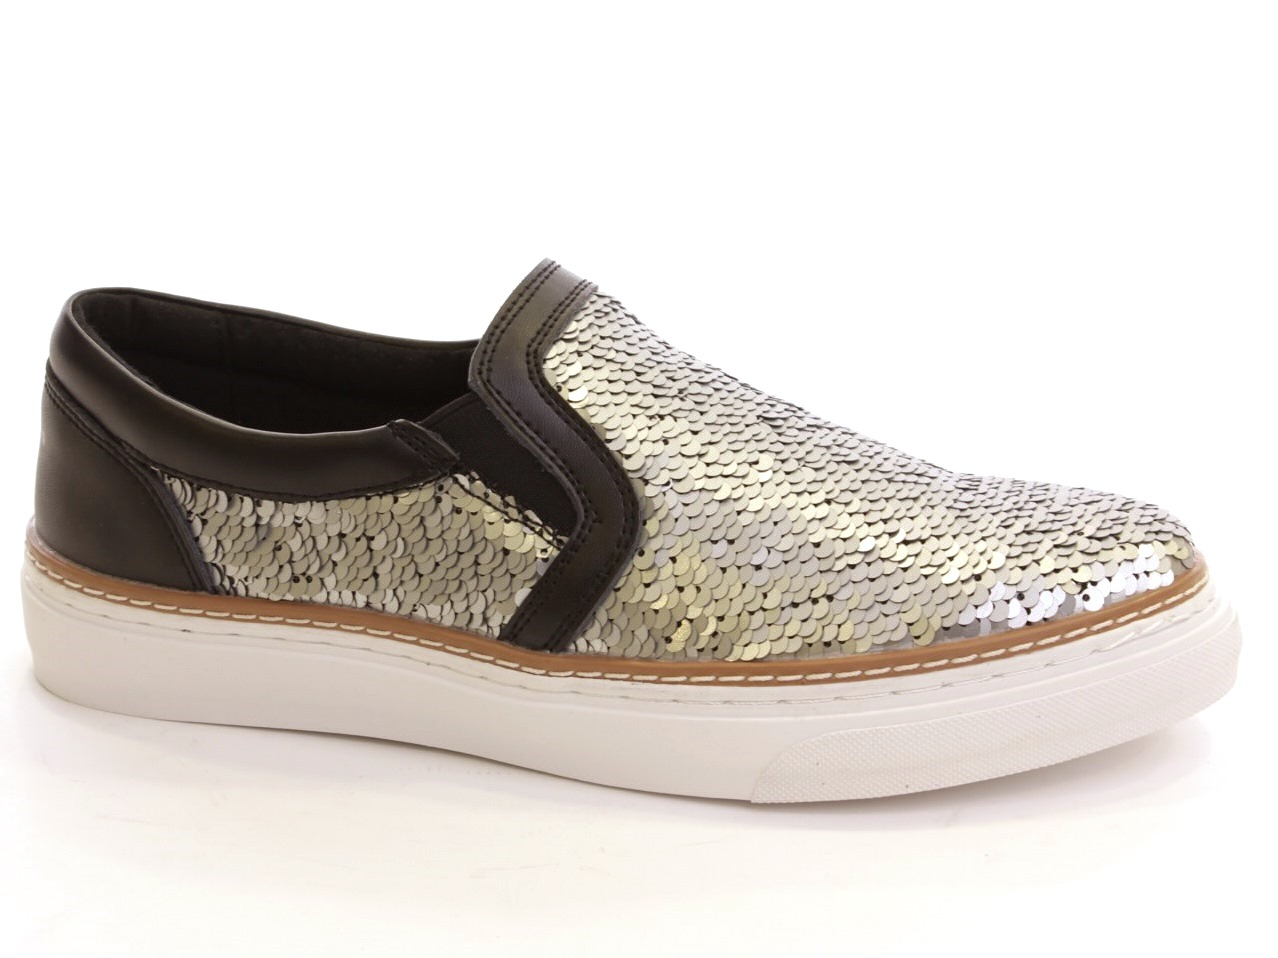 Sneakers and Espadrilles SixtySeven - 619 77925